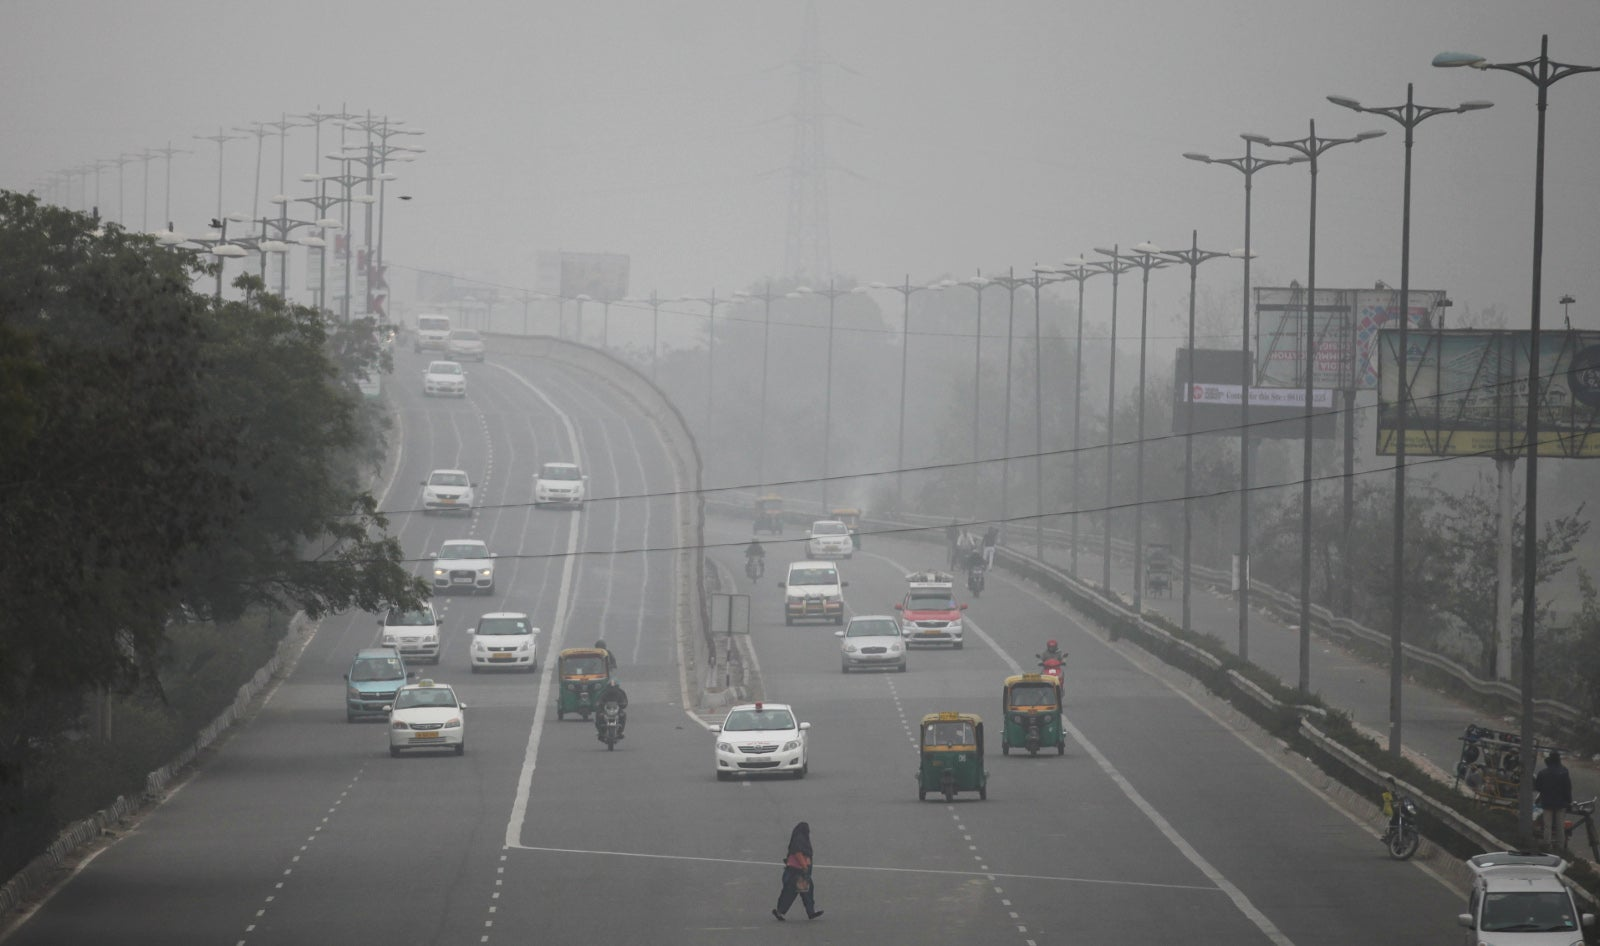 In Pictures: Delhi Still Chokes on Smog Despite Banning Half Its Cars